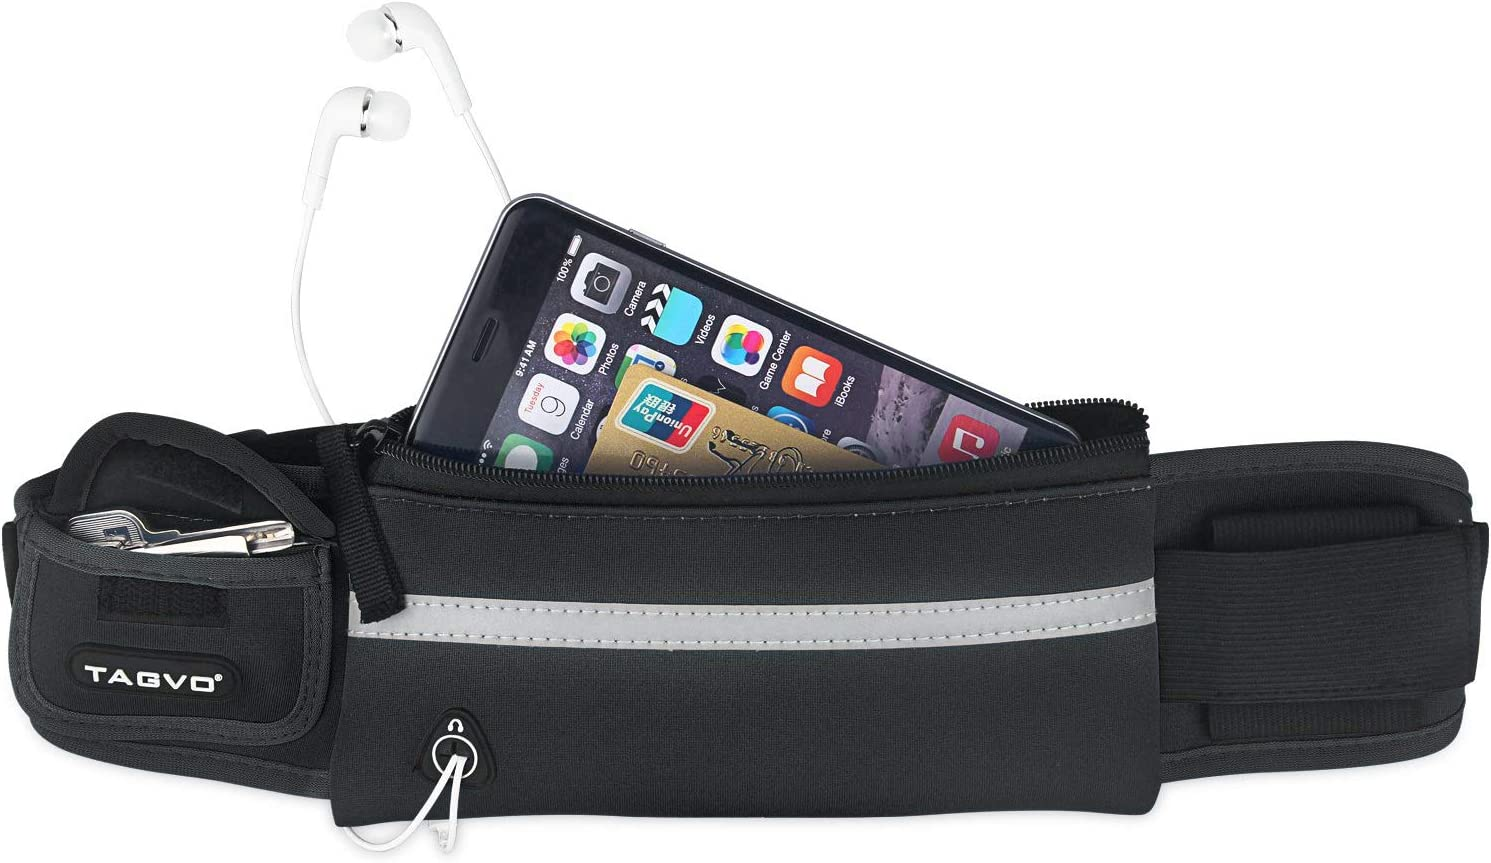 TAGVO Running Waist Pack with Adjustable Elastic Strap Suitable for All Women Men Anti-Bouncing Sweat Proof Fanny Pack, Fitness Sport Belt with Reflective Patch for Carrying Keys, Cards, Phones